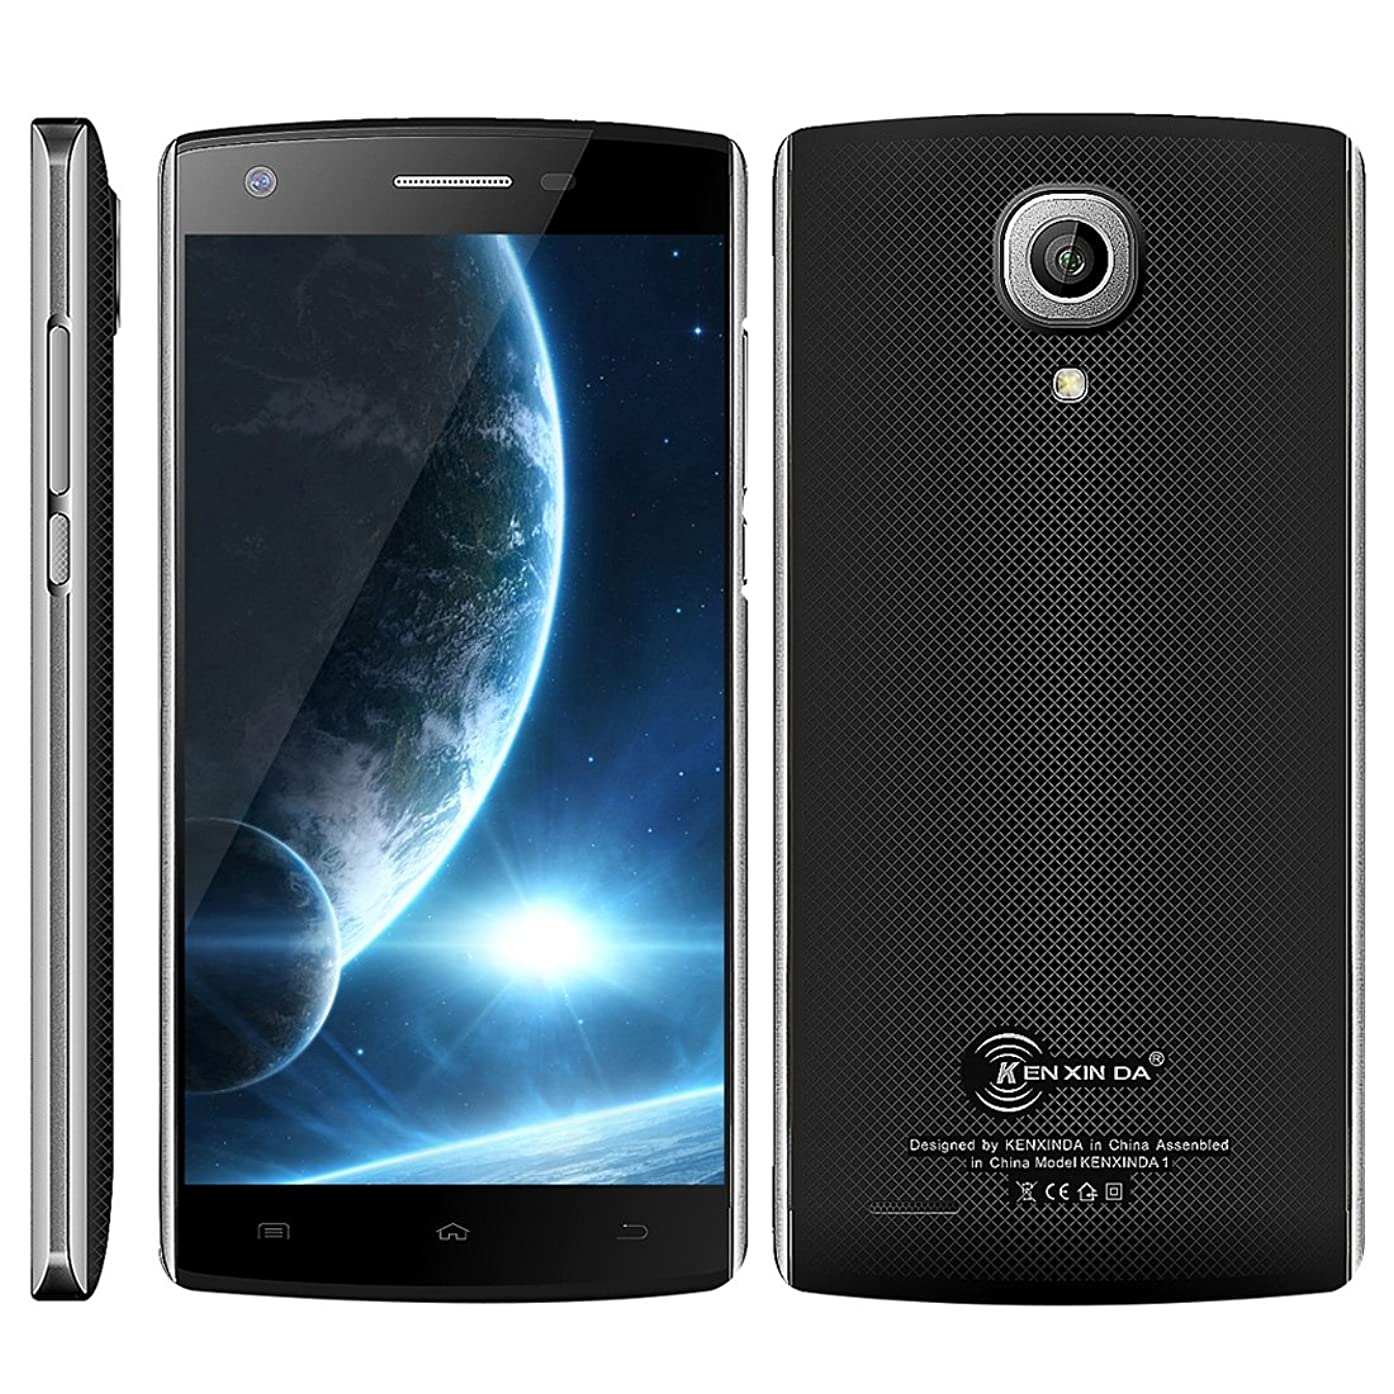 KEN XIN DA J7 Phone 5.0 inch Dual SIM 1GB+8GB 3100mAh Battery CellPhone, Android 5.1 MTK6580 Quad Core up to 1.3GHz 3G Network Smartphone, Support FM (Black)